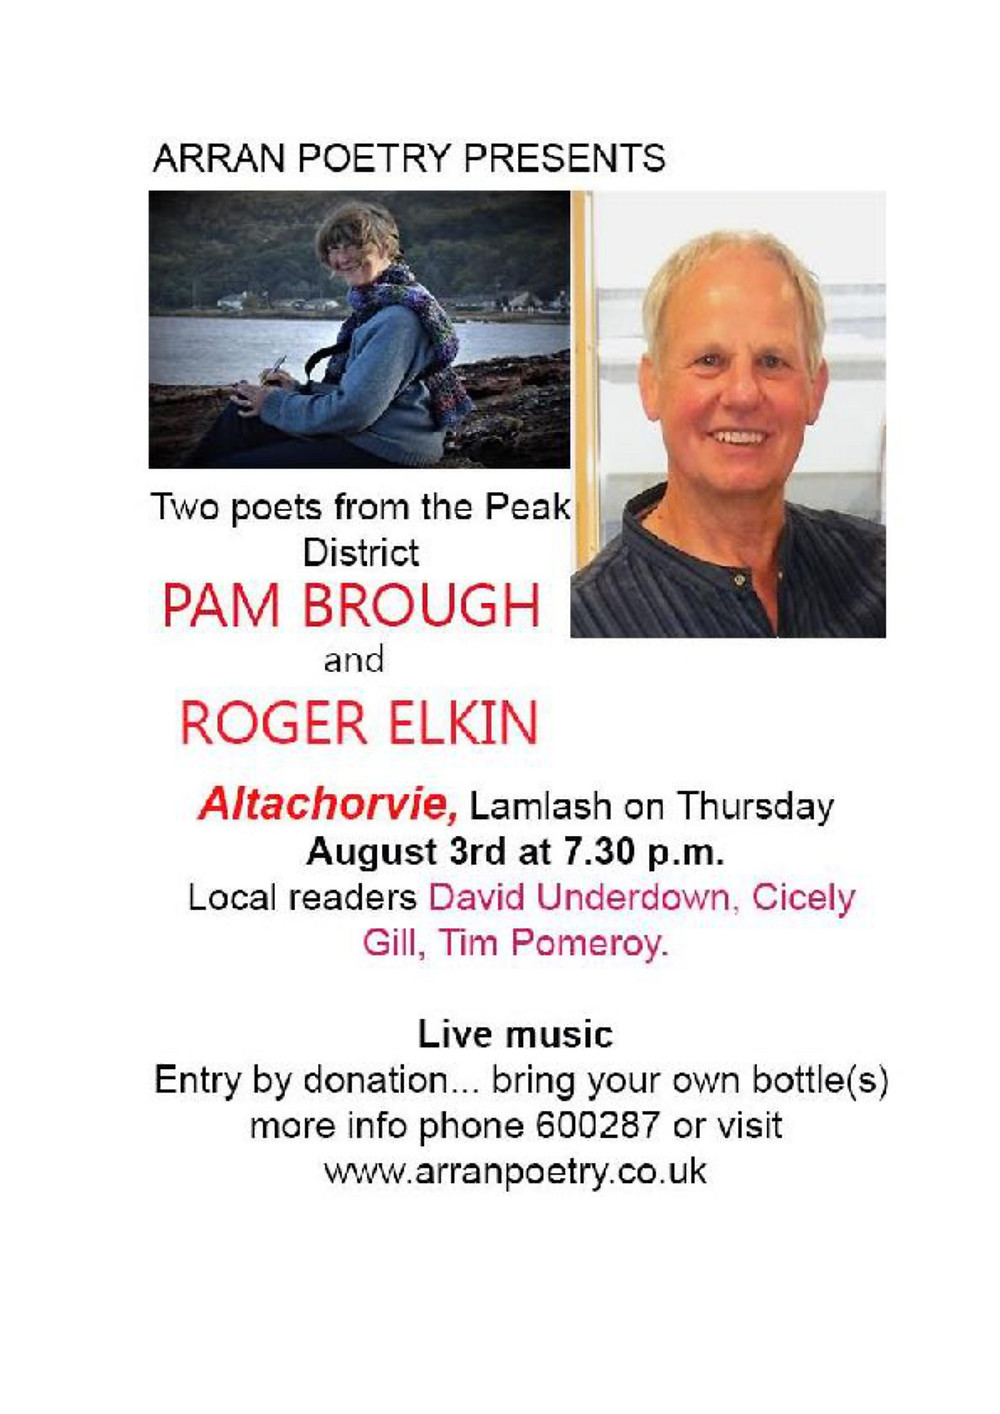 Poster for Pam Brough and Roger Elkin Evening